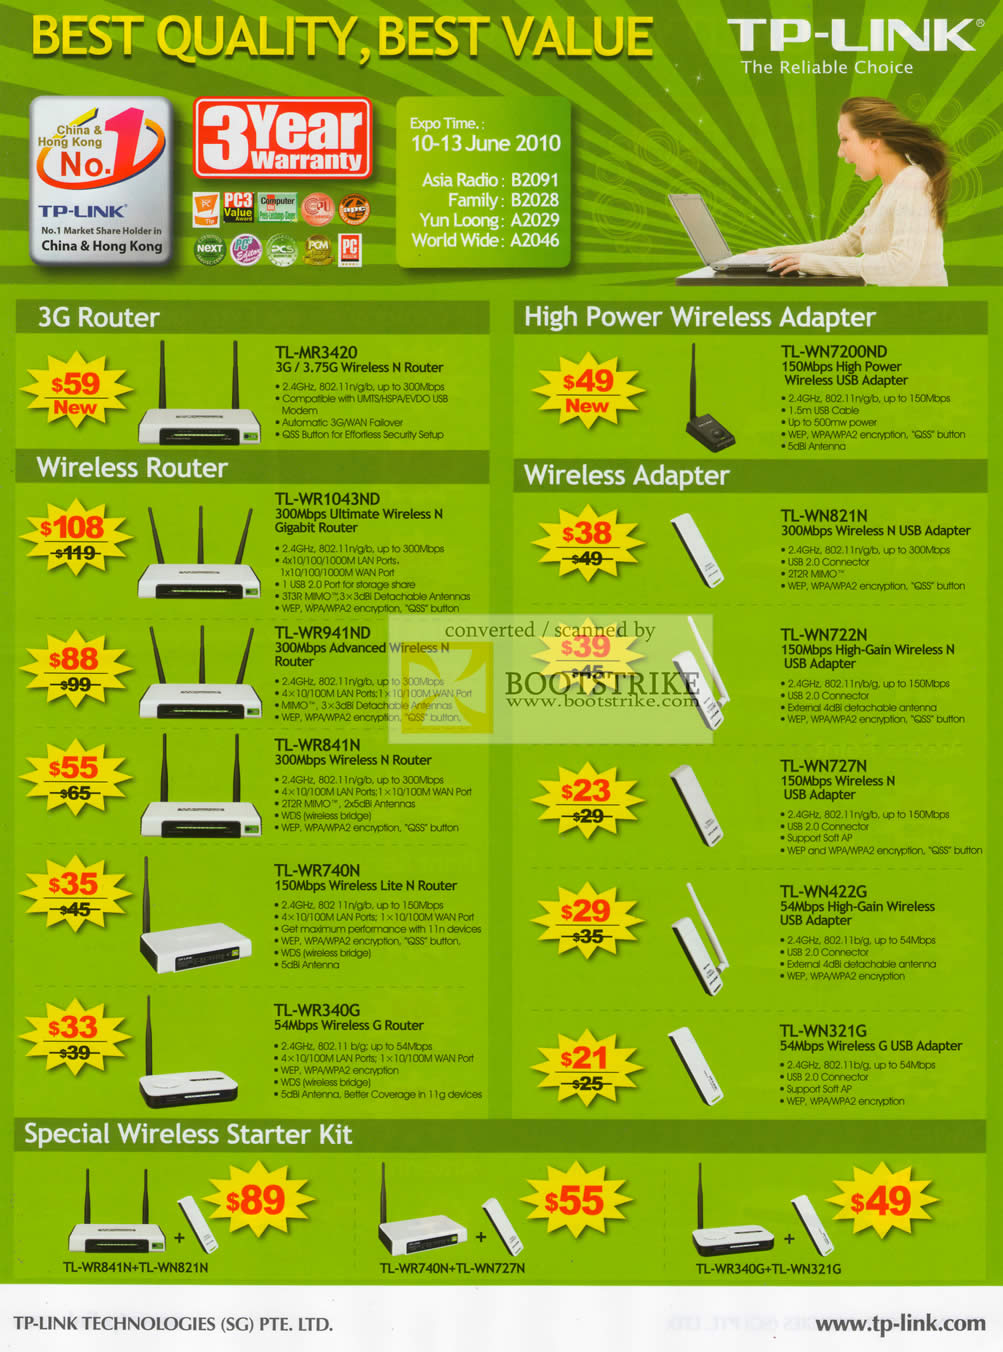 PC Show 2010 price list image brochure of Asia Radio TP Link 3G Router USB Adapter Wireless